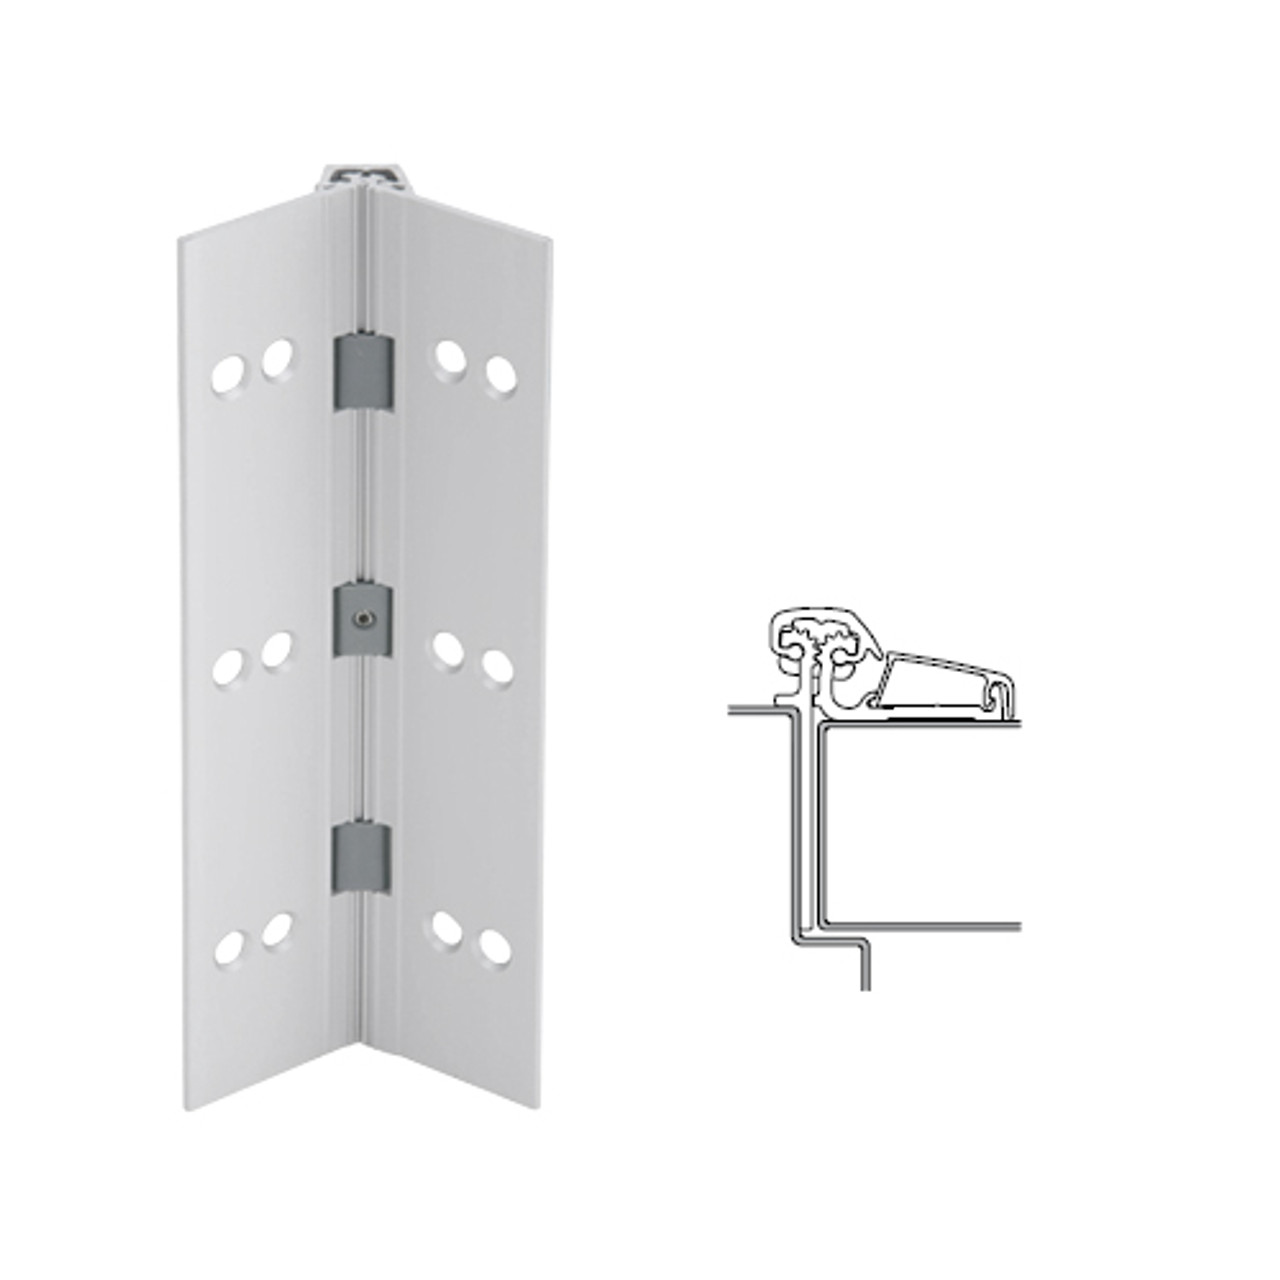 054XY-US28-95-SECWDHM IVES Adjustable Half Surface Continuous Geared Hinges with Security Screws - Hex Pin Drive in Satin Aluminum